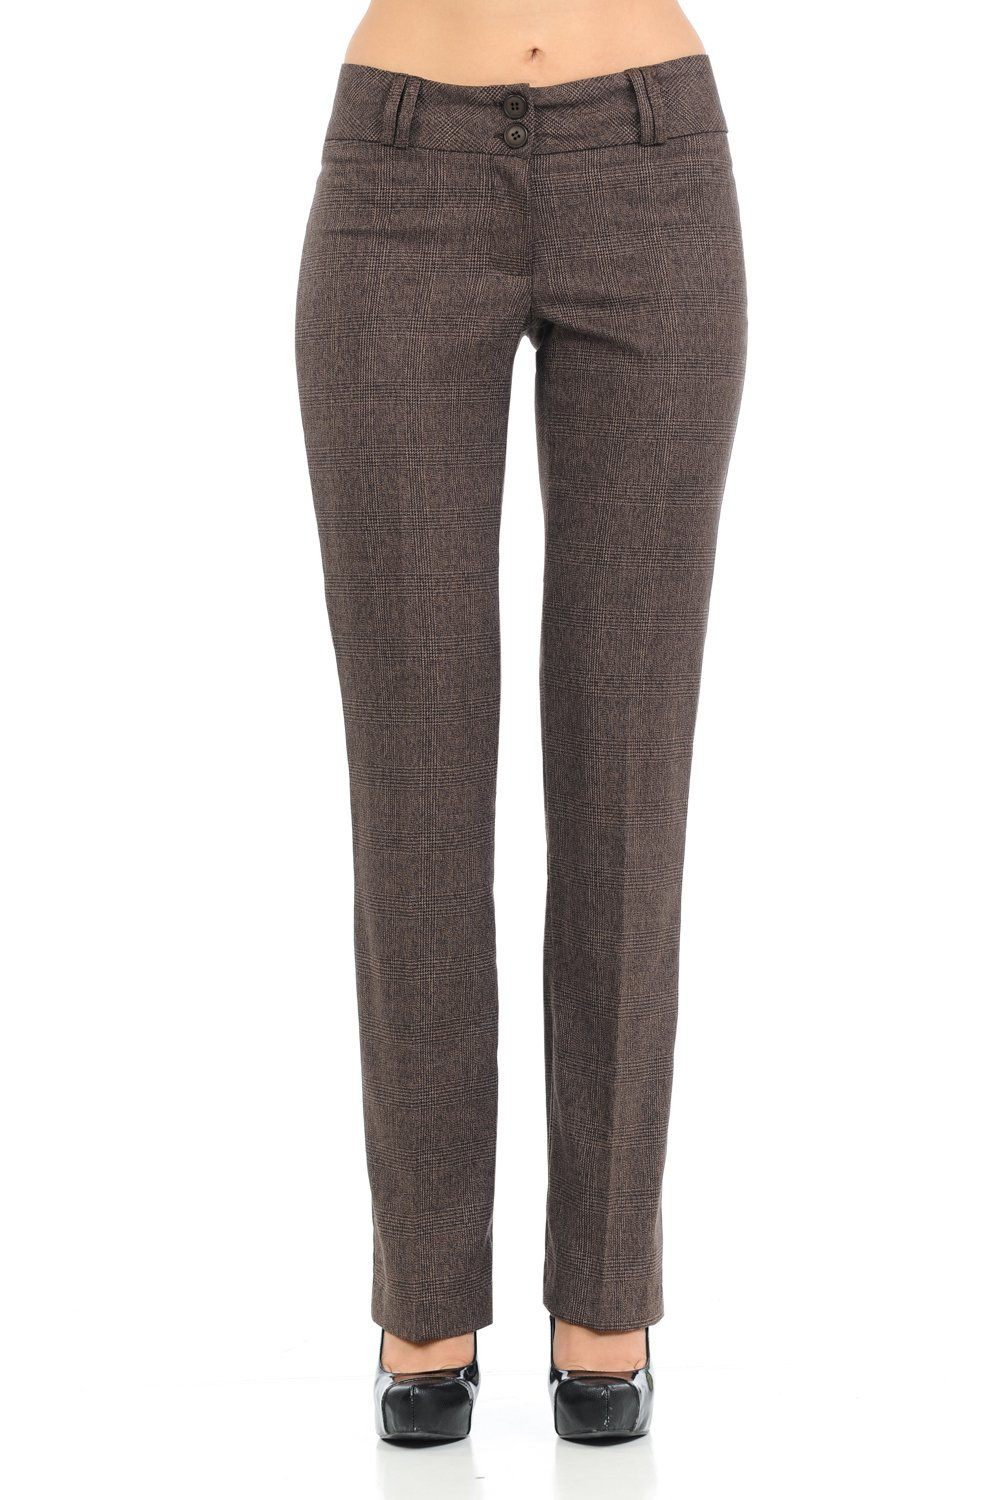 Sweethabit Womens Button Flaps Two Tone Straight Fit Trouser Pants. (Small, 2707N Plaid Brown)